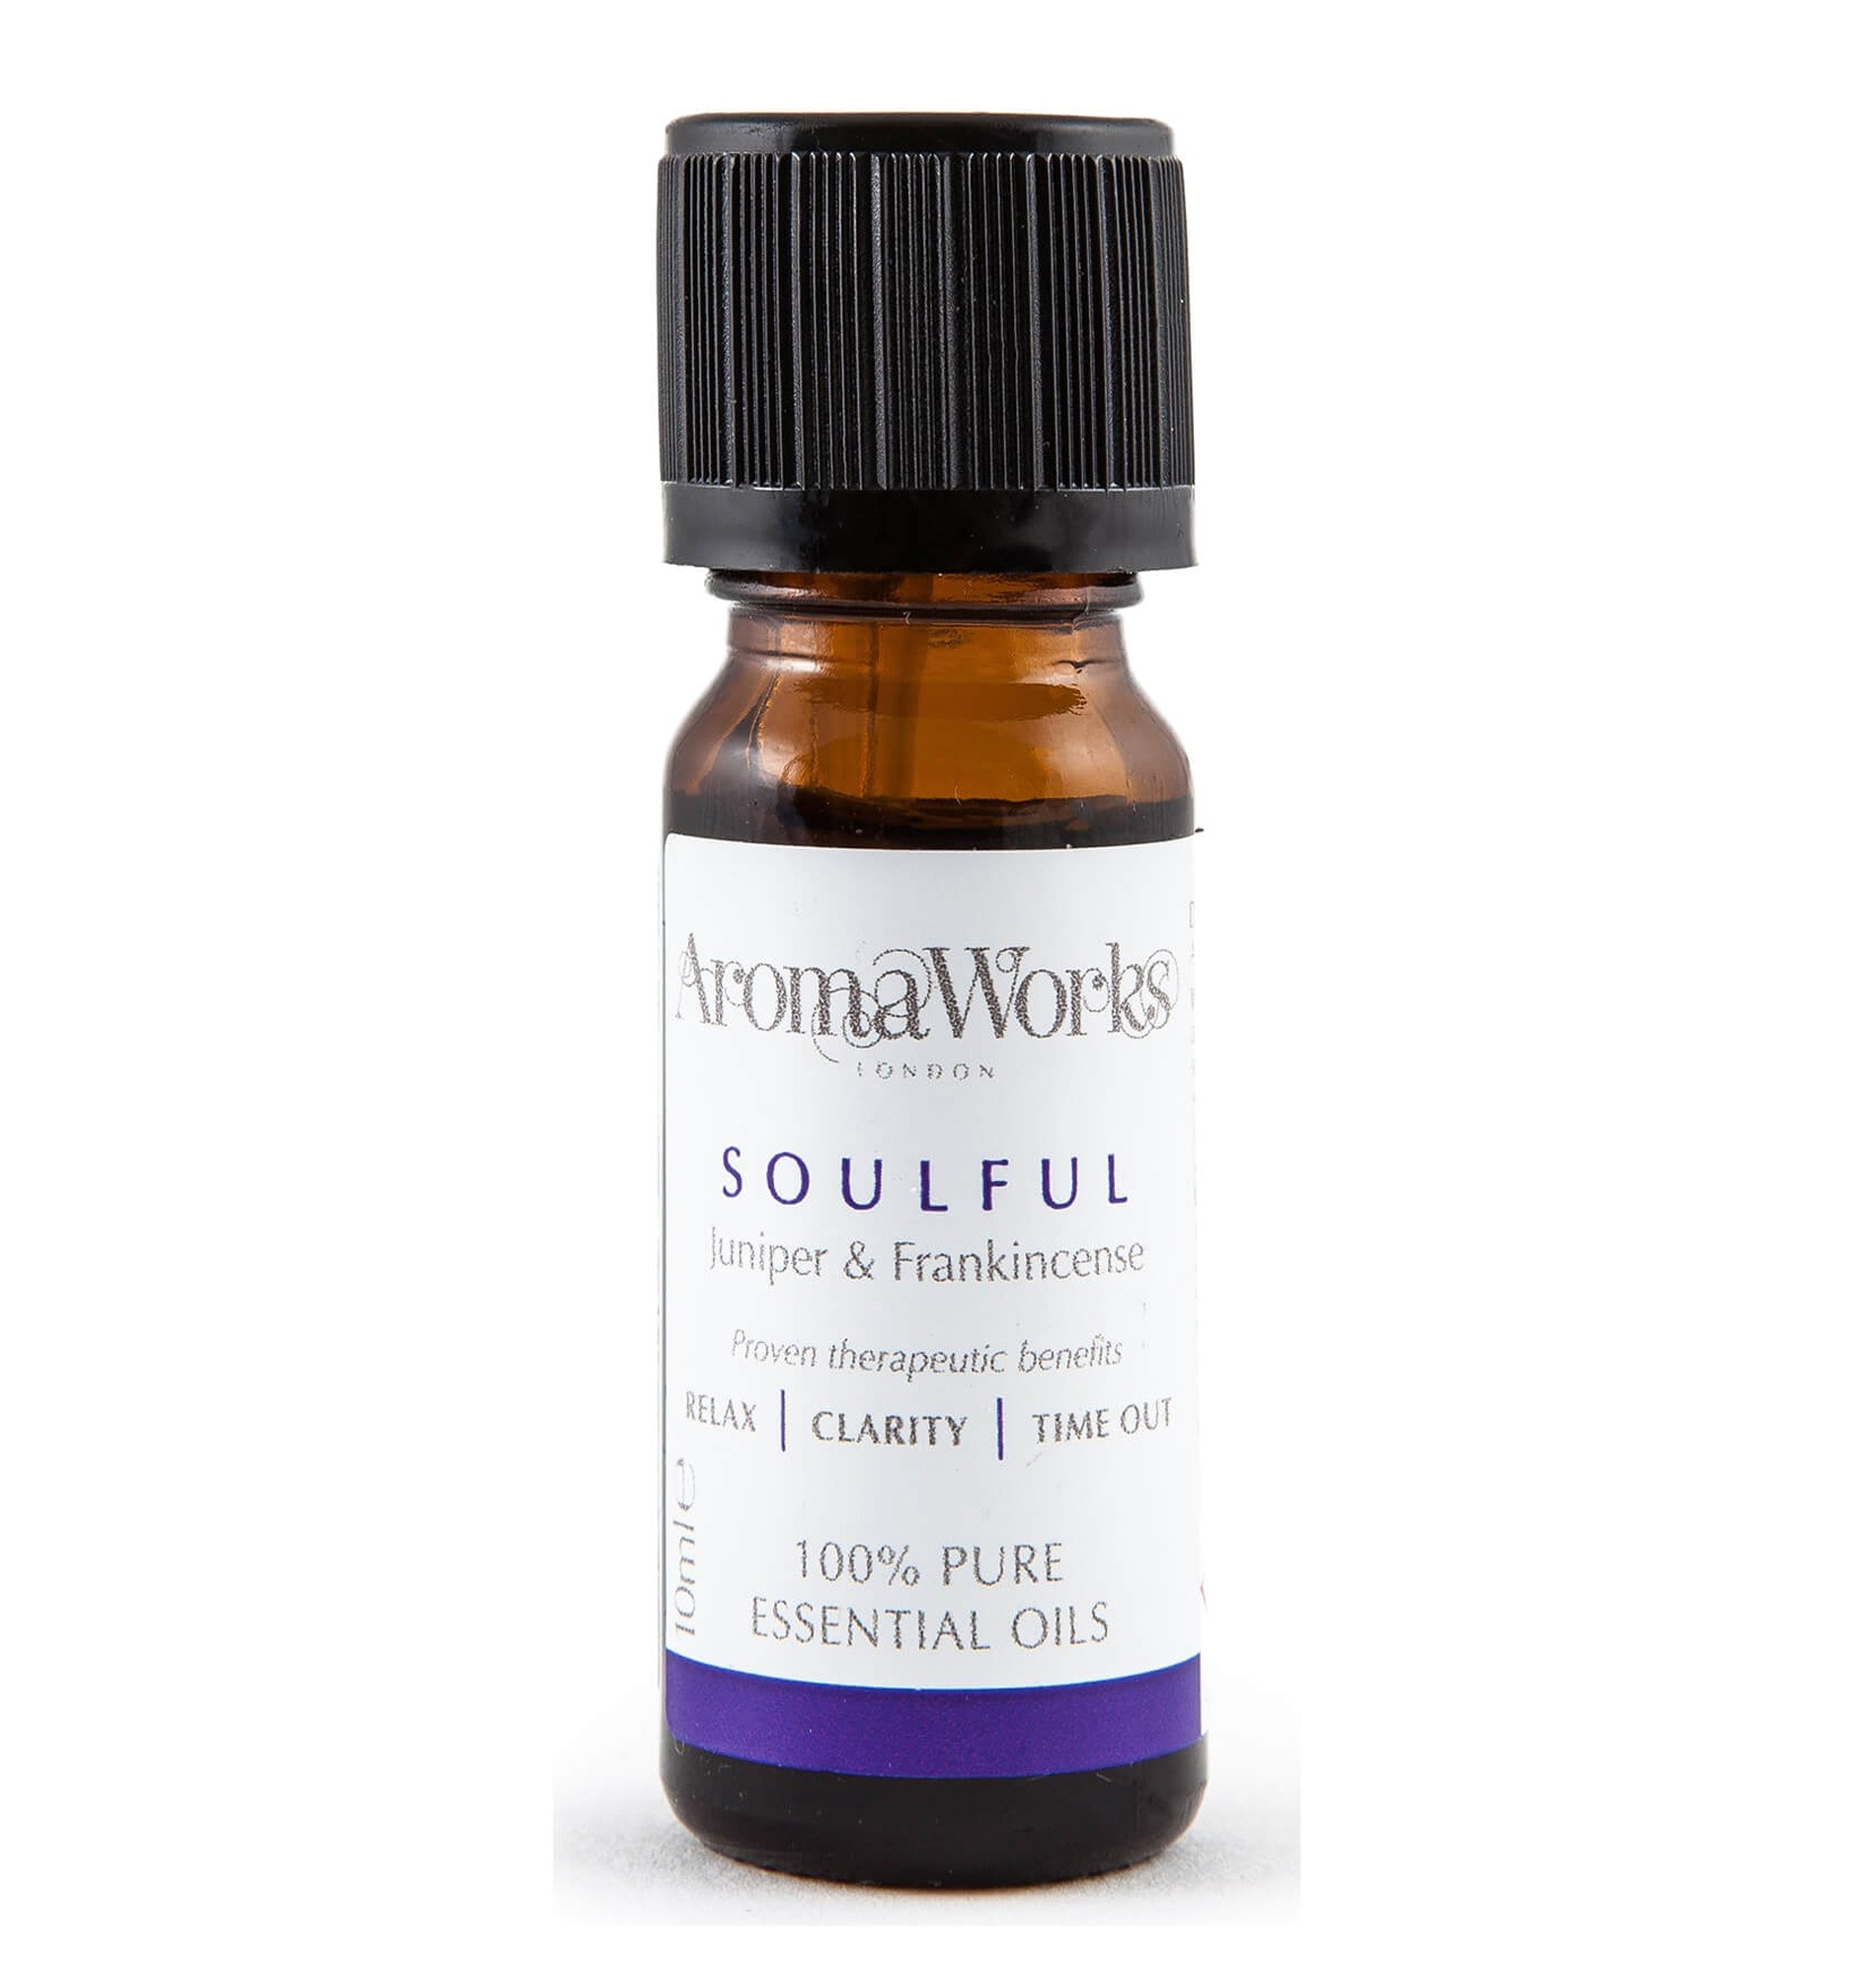 Aromaworks Soulful Essential Oil